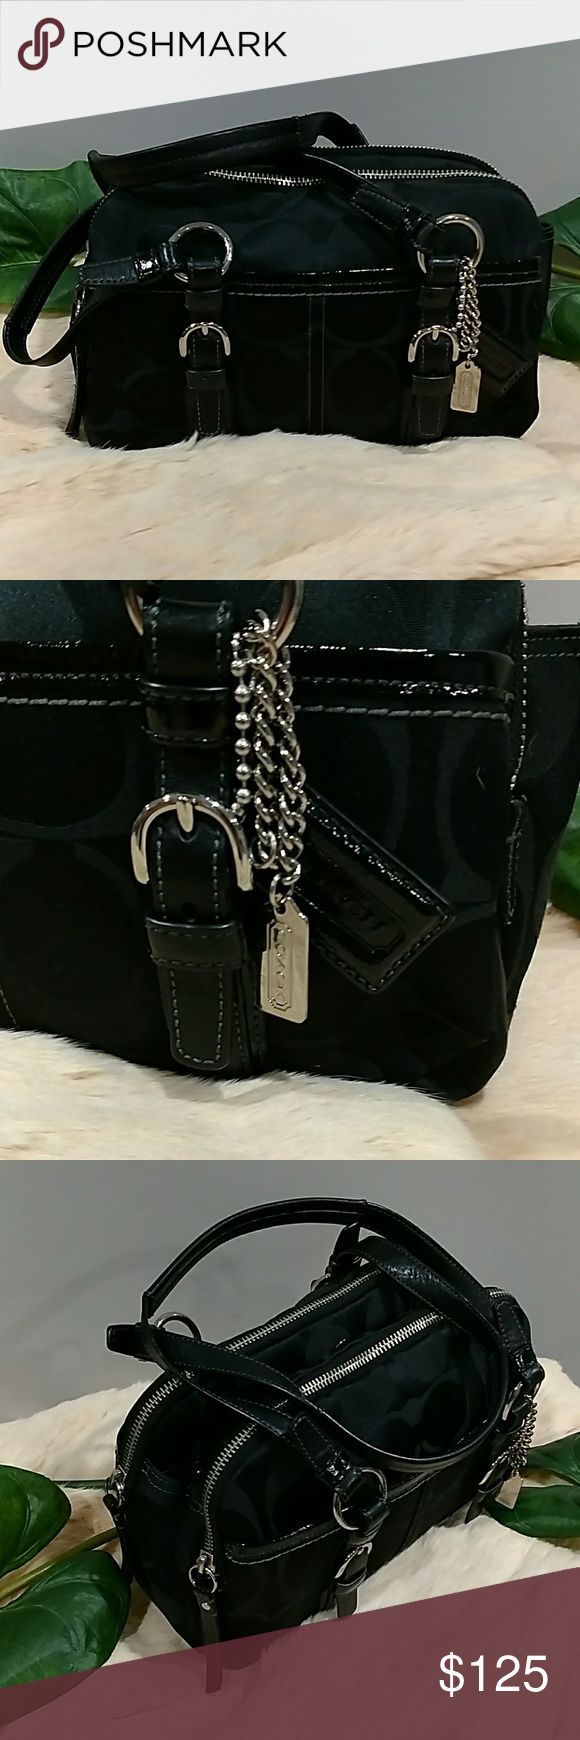 AUTHENTIC COACH SOHO SATCHEL BLACK THIS IS AN AUTHENTIC COACH SOHO SATCHEL, NEAR LIKE NEW CONDITION. GREAT YKK QUALITY ZIPPERS, ZOE'S RUN ON TRACK SMOOTHLY. GREAT QUALITY STITCHING. COACH LOGOS SURROUNDING OUTER SHELL. HAS COACH LABEL INSIDE. NO ISSUES NO STAINS NO SCUFFS NO SNAGS INSIDE LOOKS GREAT... REALLY VERY MINIMAL SIGNS OF WEAR. Coach Bags Satchels